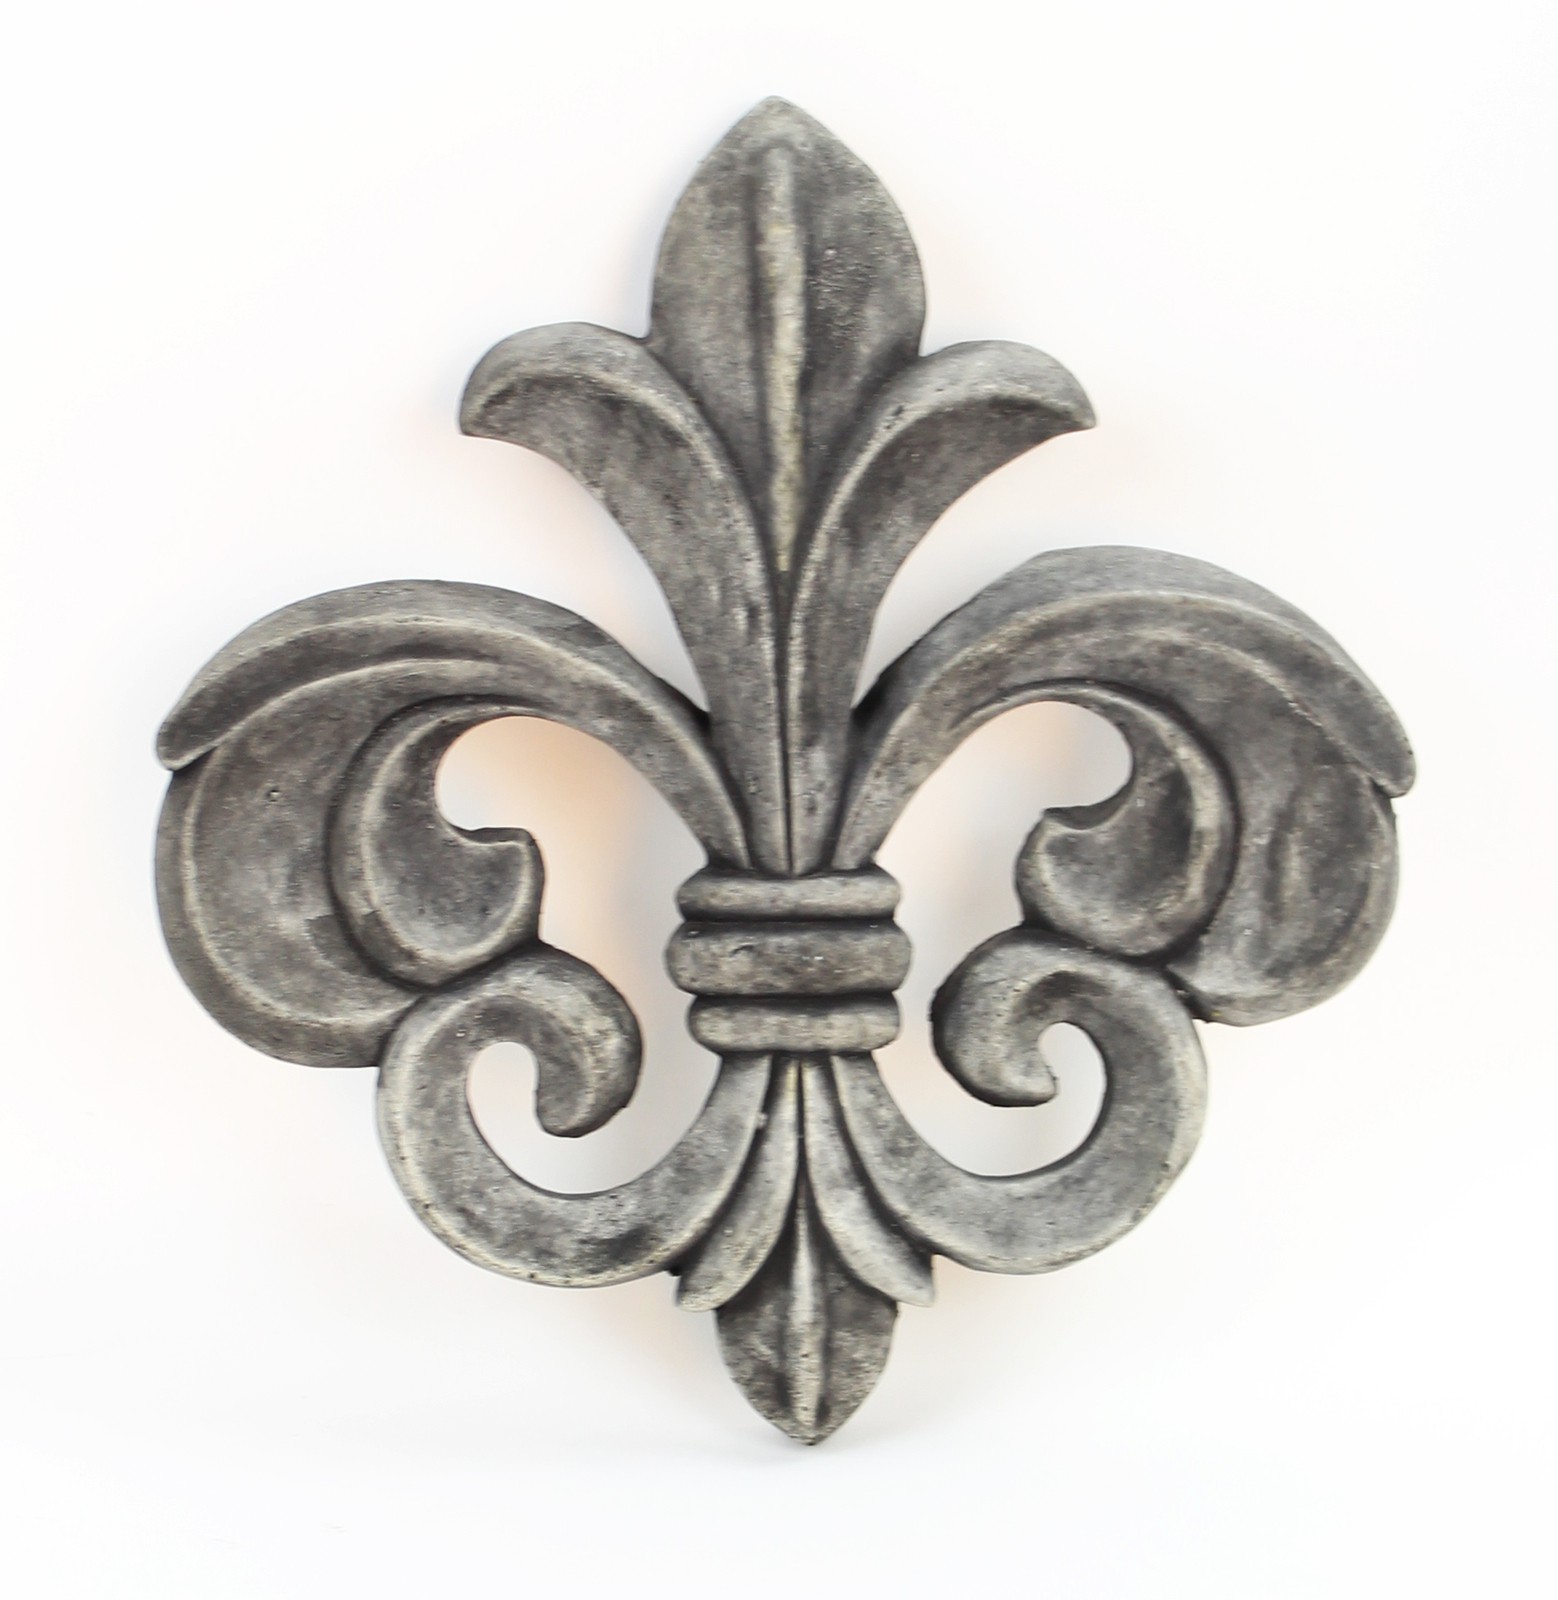 Fleur de Lis Concrete Wall Plaque Ornament